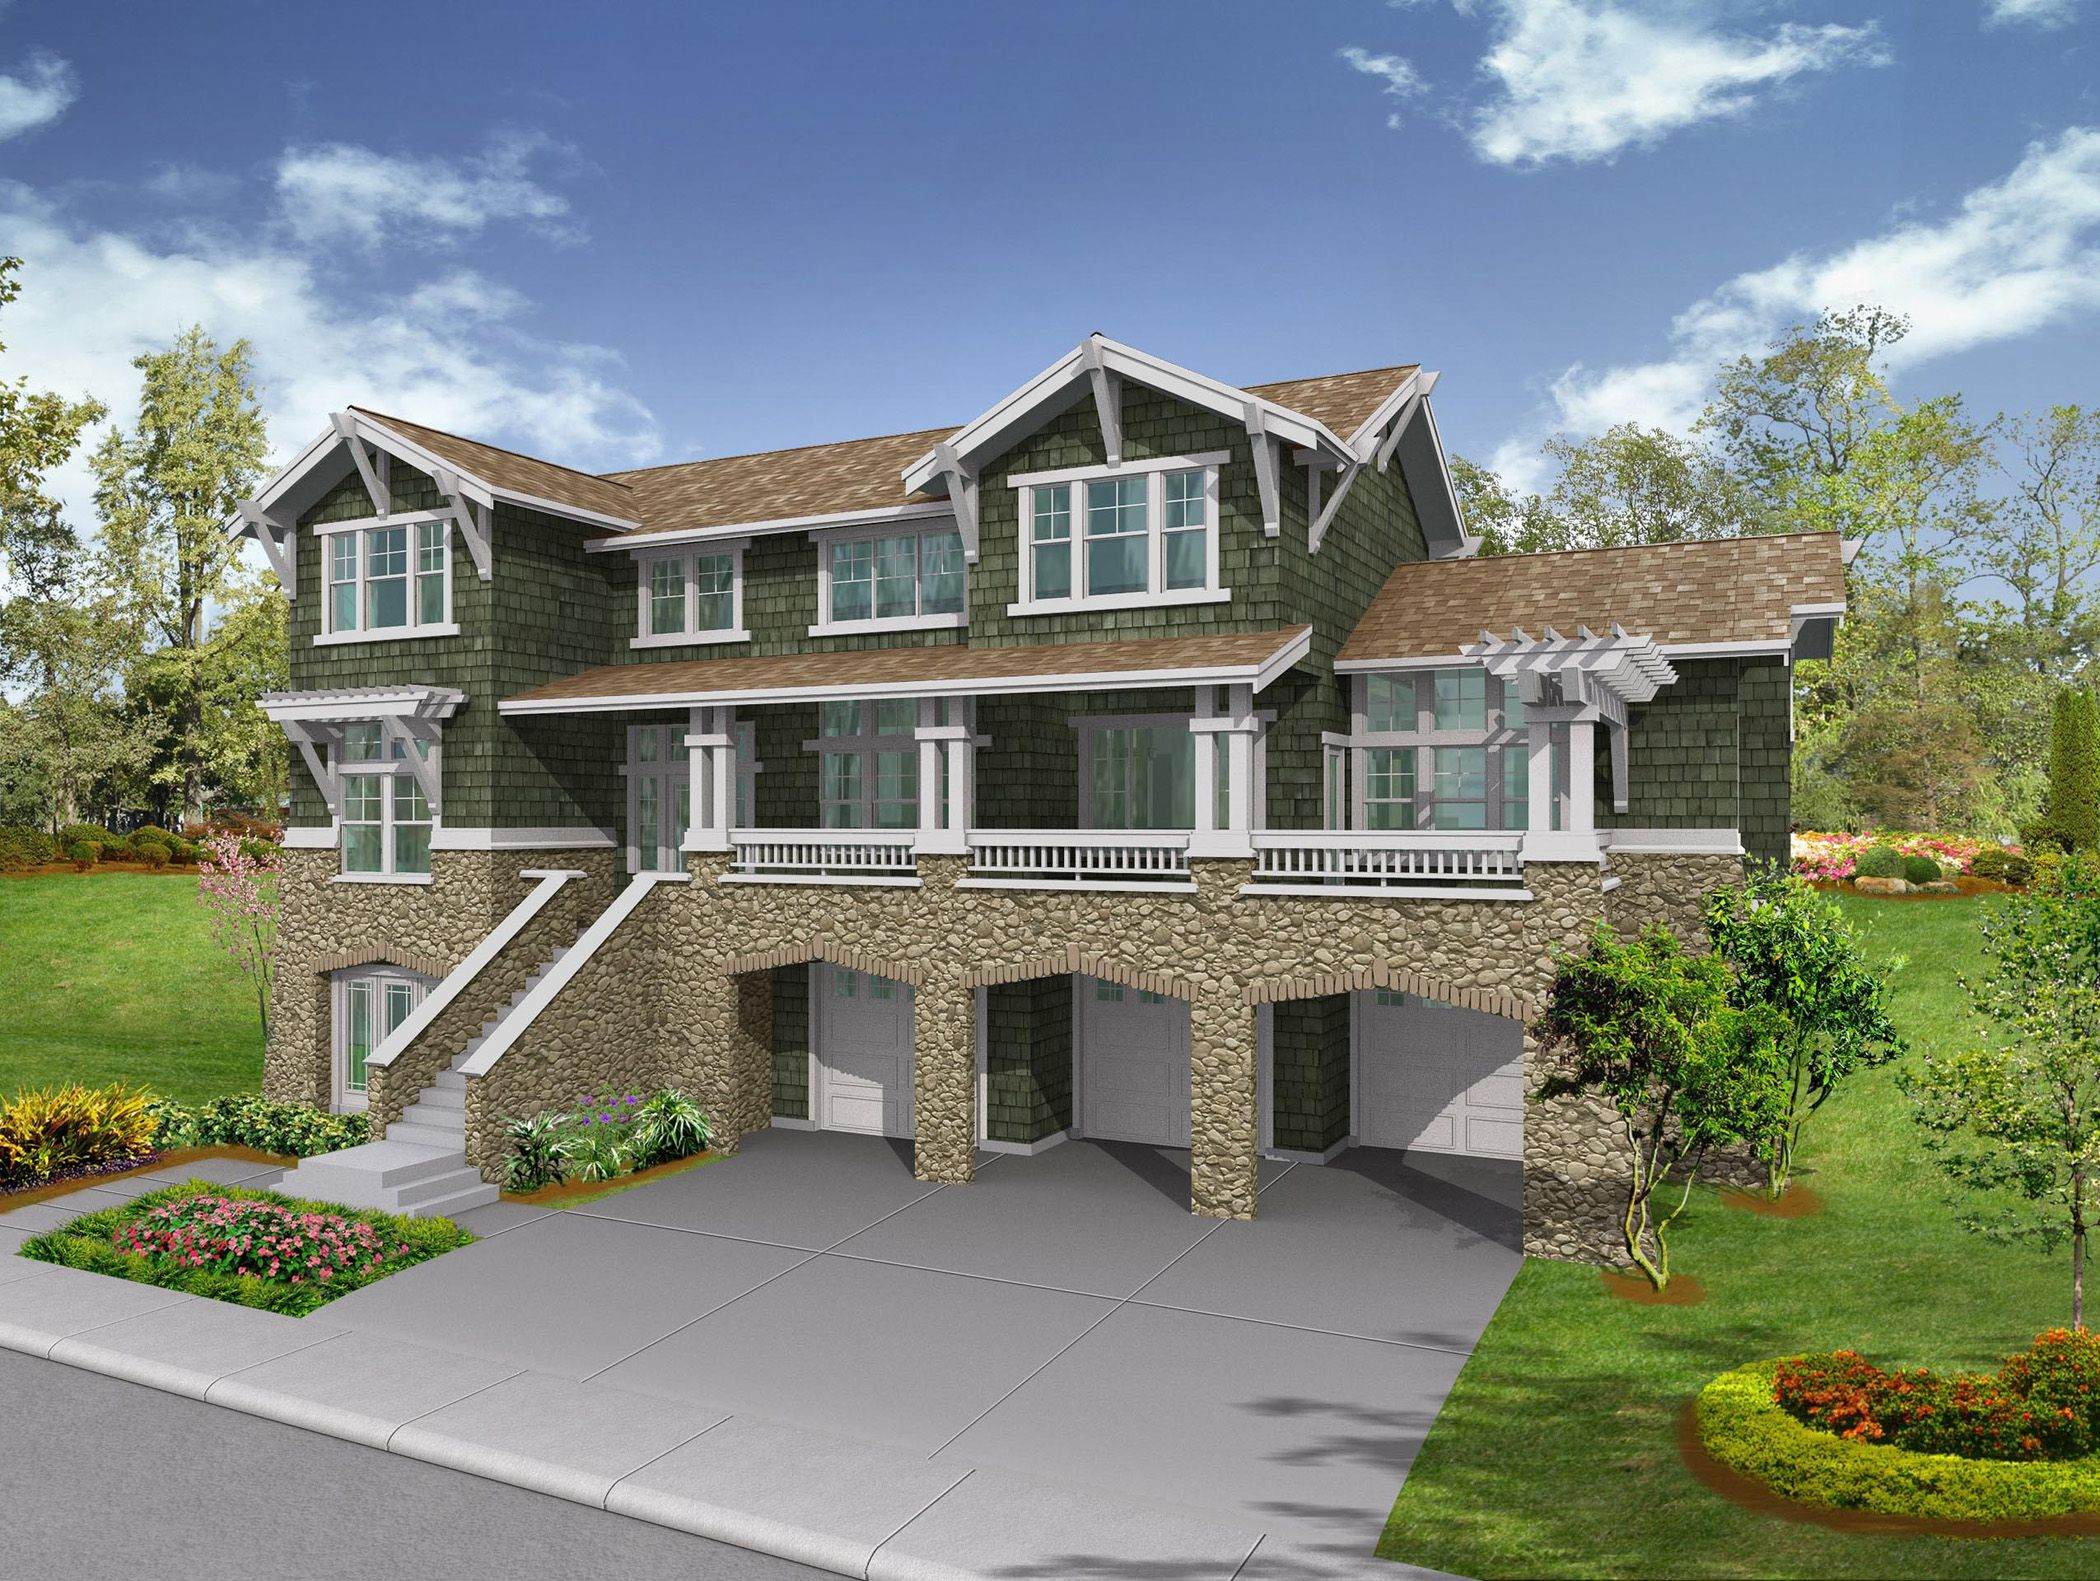 Plan 23164jd Covered Porch Perfect For View Lots Craftsman Style House Plans Craftsman House Craftsman House Plans